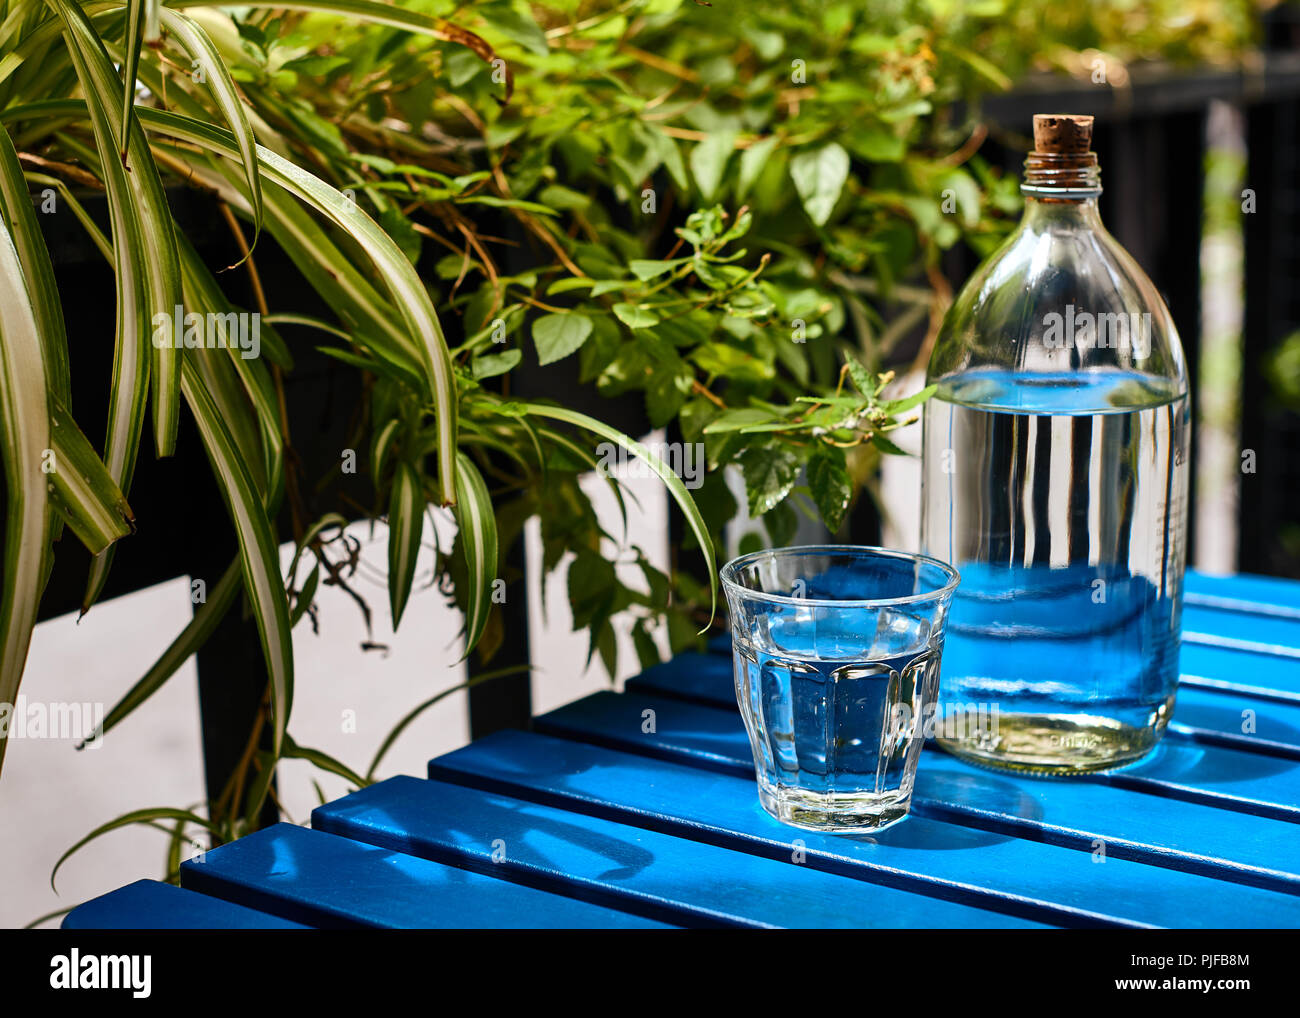 The glass bottle of drinking water on the blue table in the sunny day - Stock Image